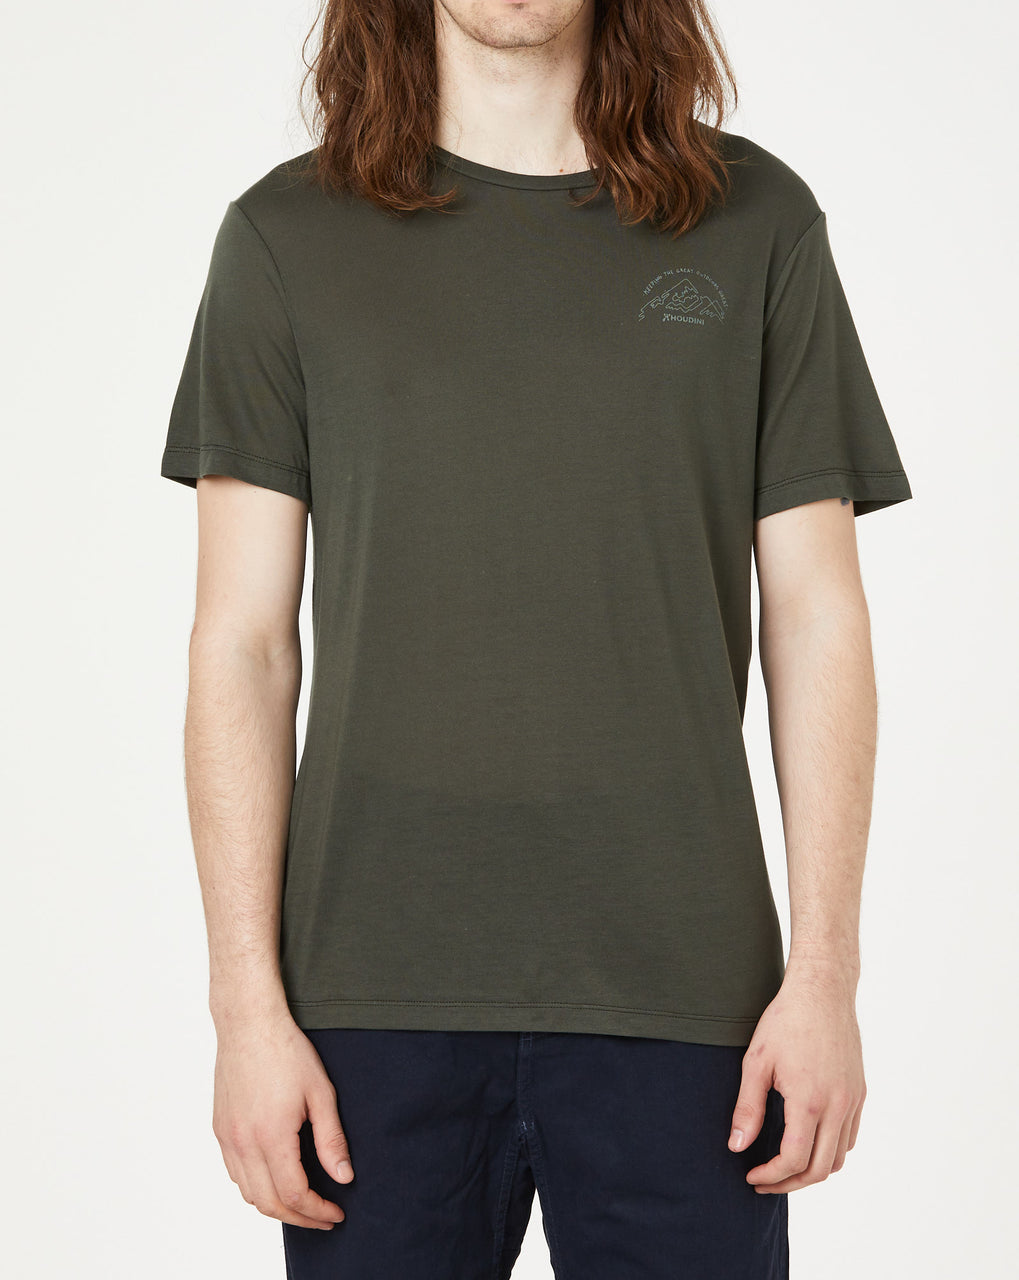 Houdini M's Tree Message Tee (Willow Green)